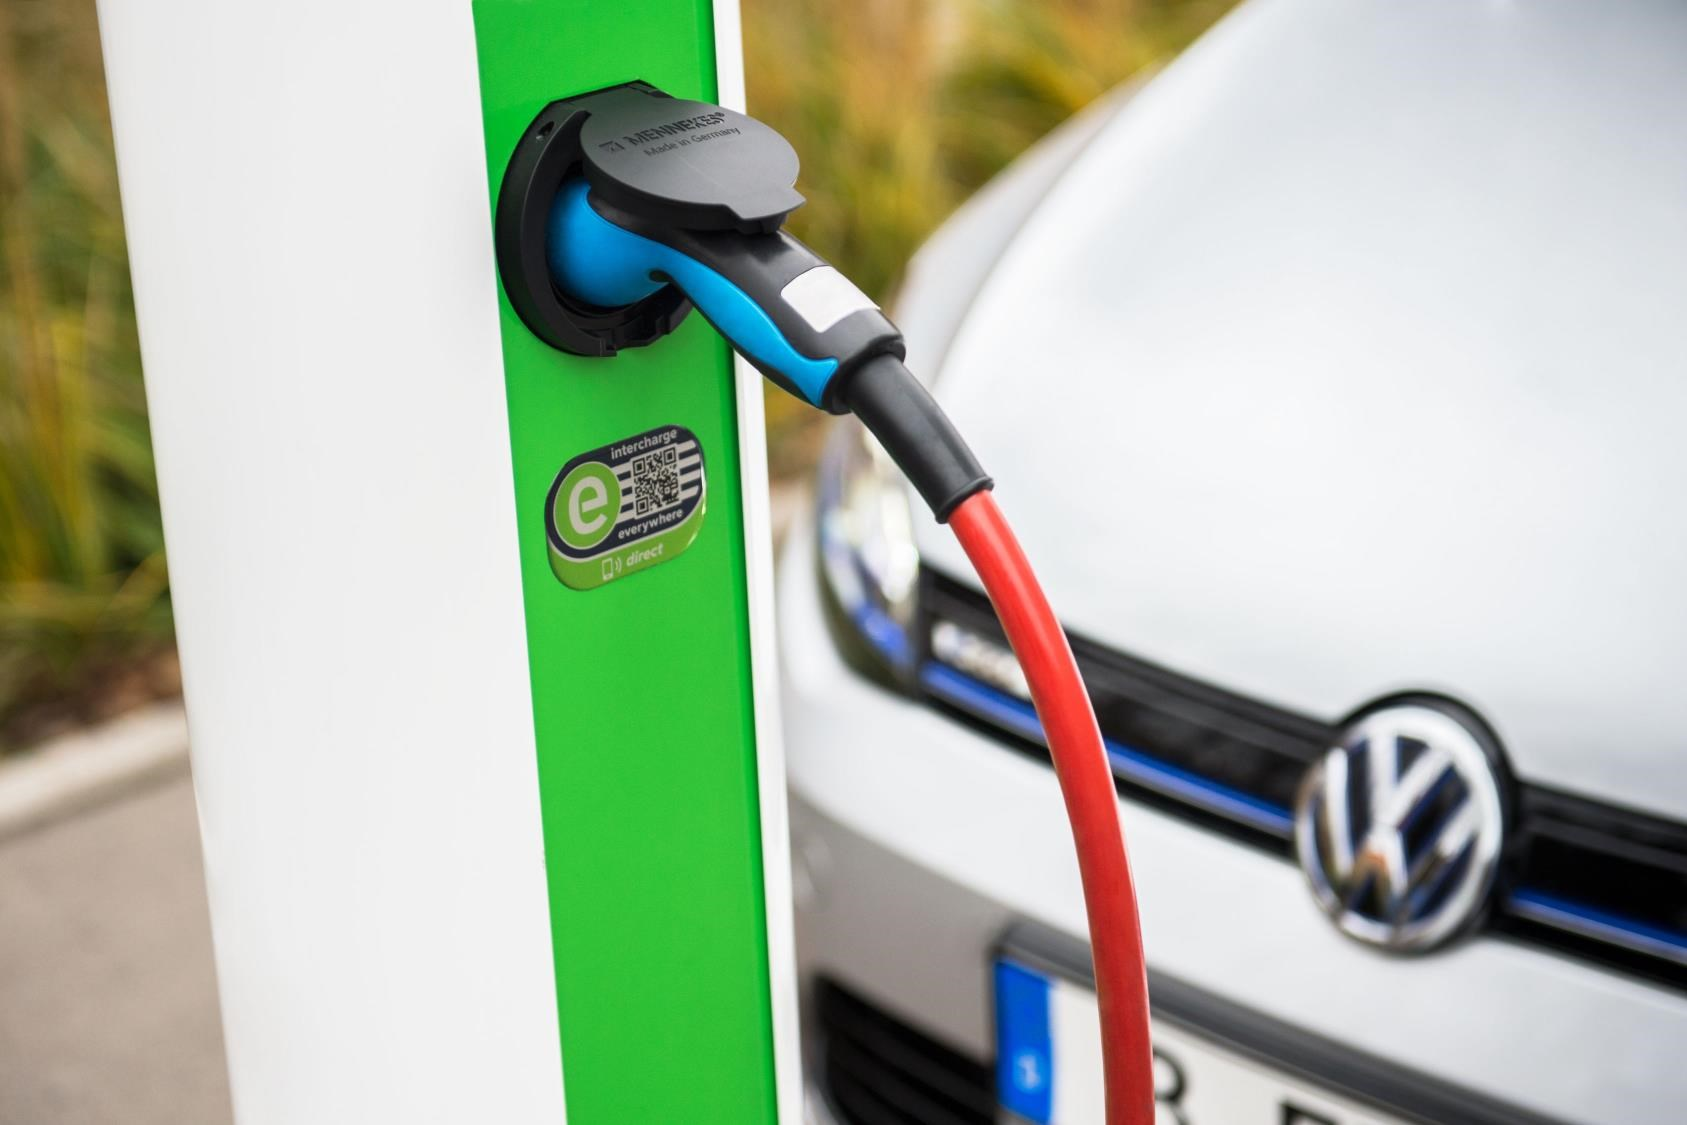 How to solve a problem like charging EVs? Meet the expanding Hubject